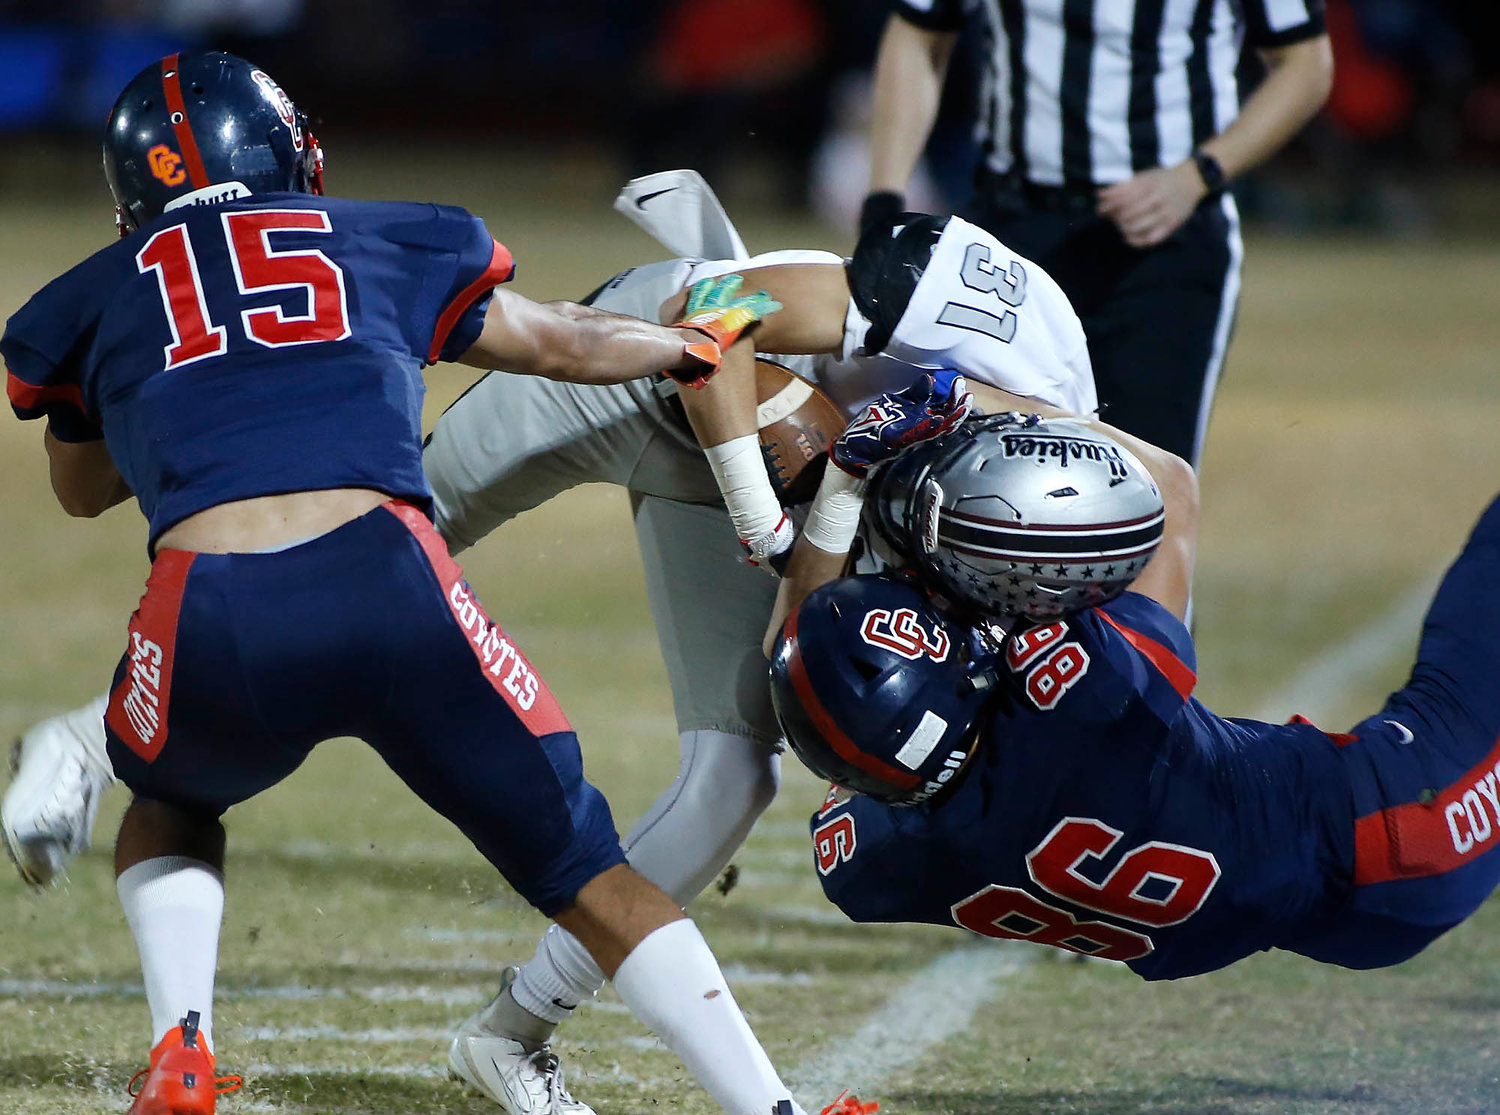 Centennial junior defensive end DJ Gleash (86) and senior cornerback Eric Haney (15) tackle Hamilton's Christian Anaya after a catch during the first half of their playoff football game on Friday.